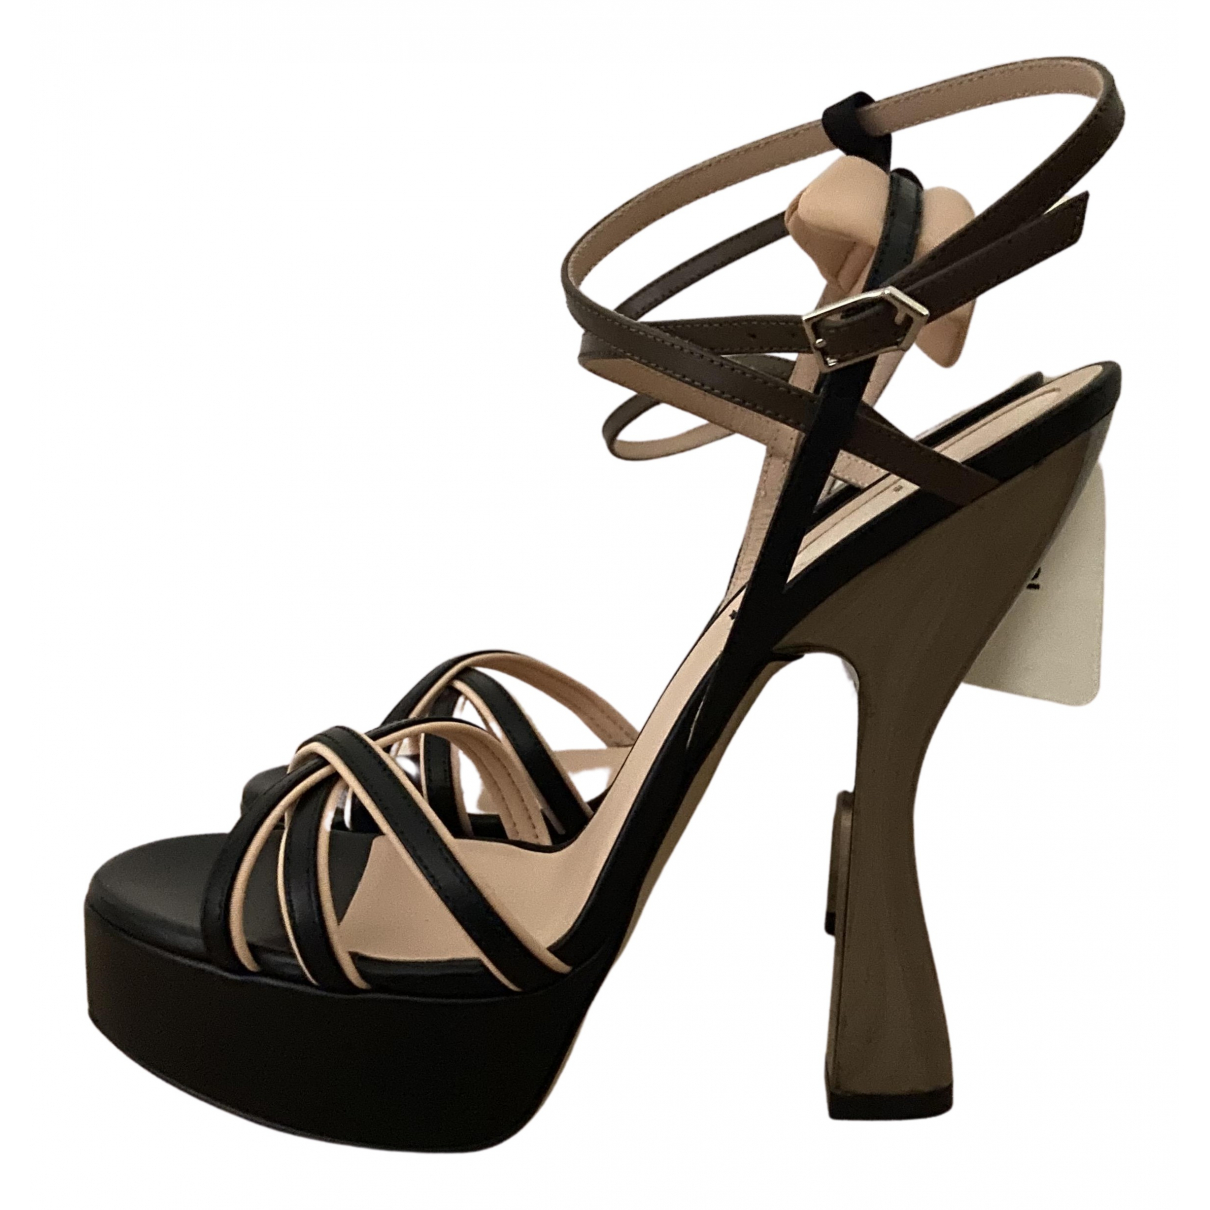 Fendi \N Black Leather Sandals for Women 38 EU